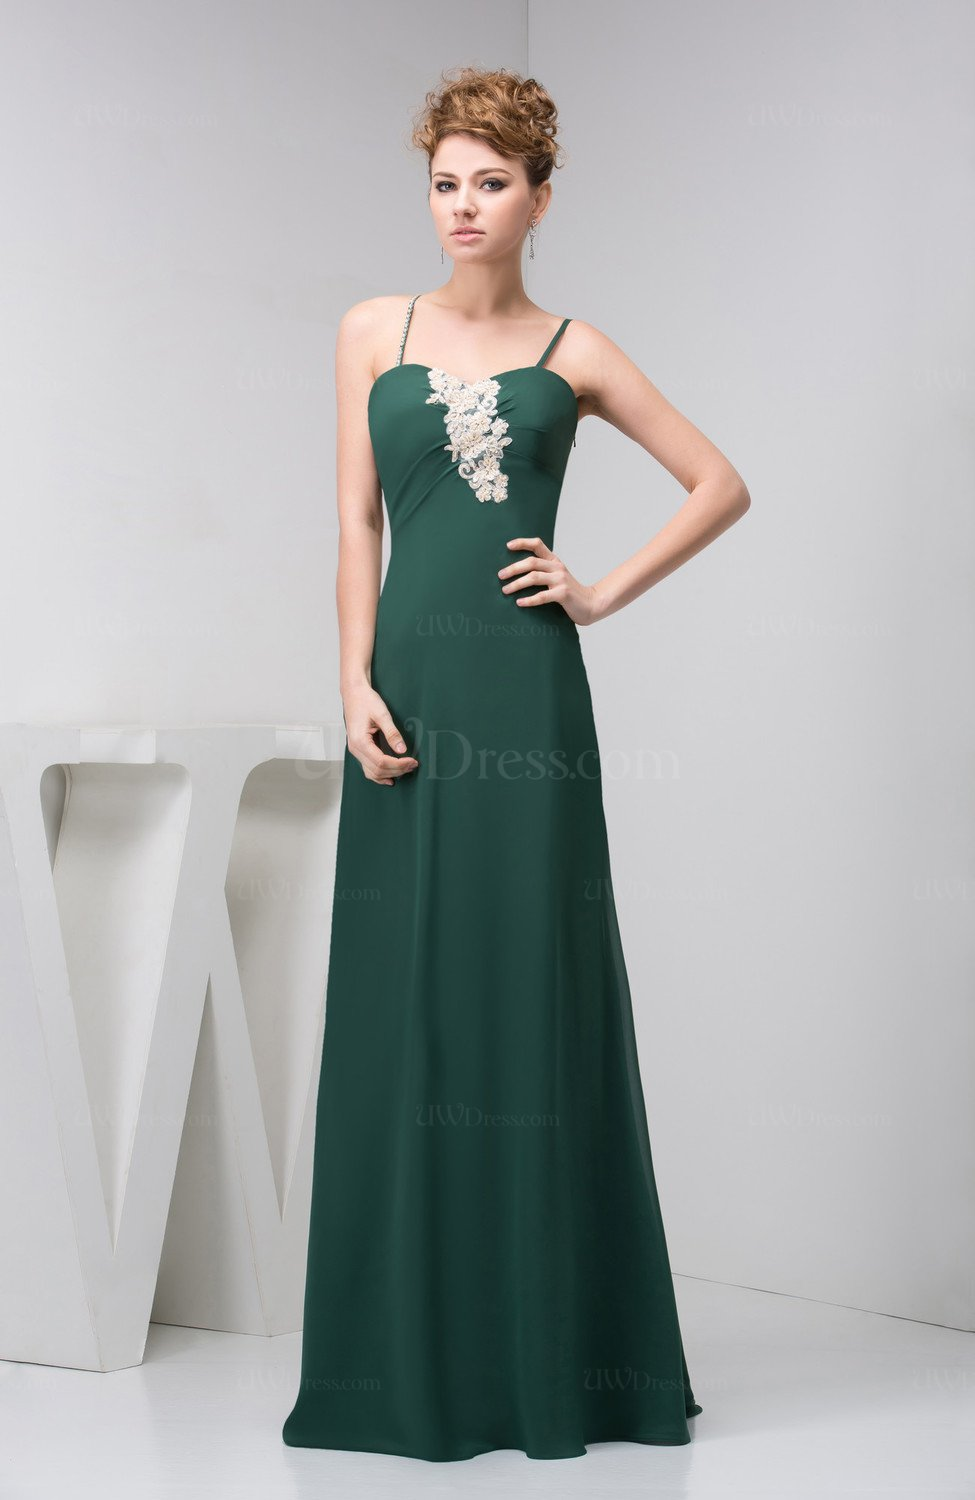 Hunter green inexpensive wedding guest dress unique for Cheap wedding guest dresses